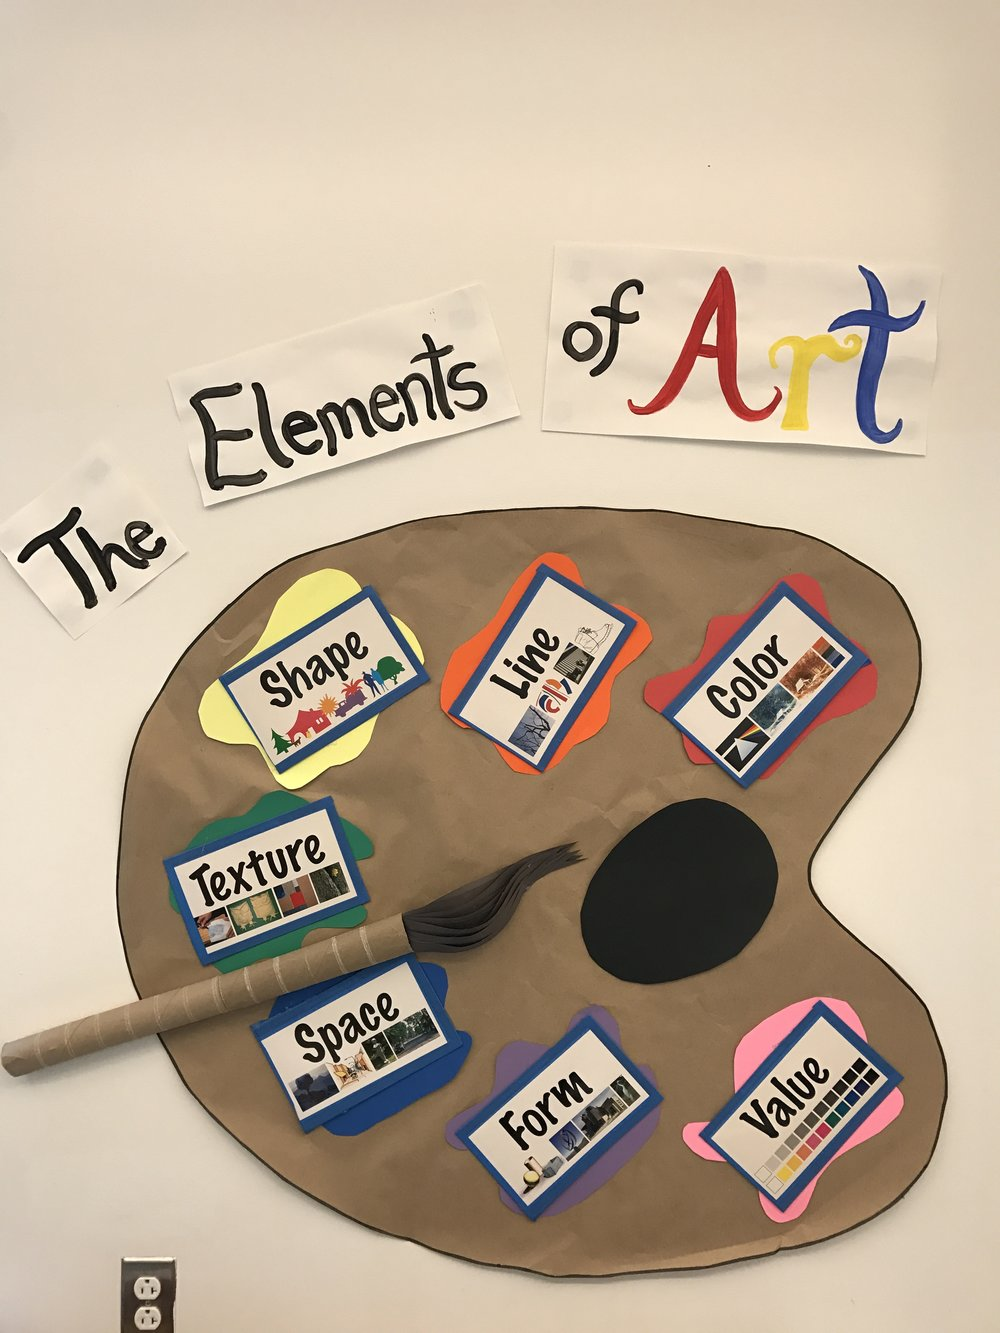 Our elements of art chart.